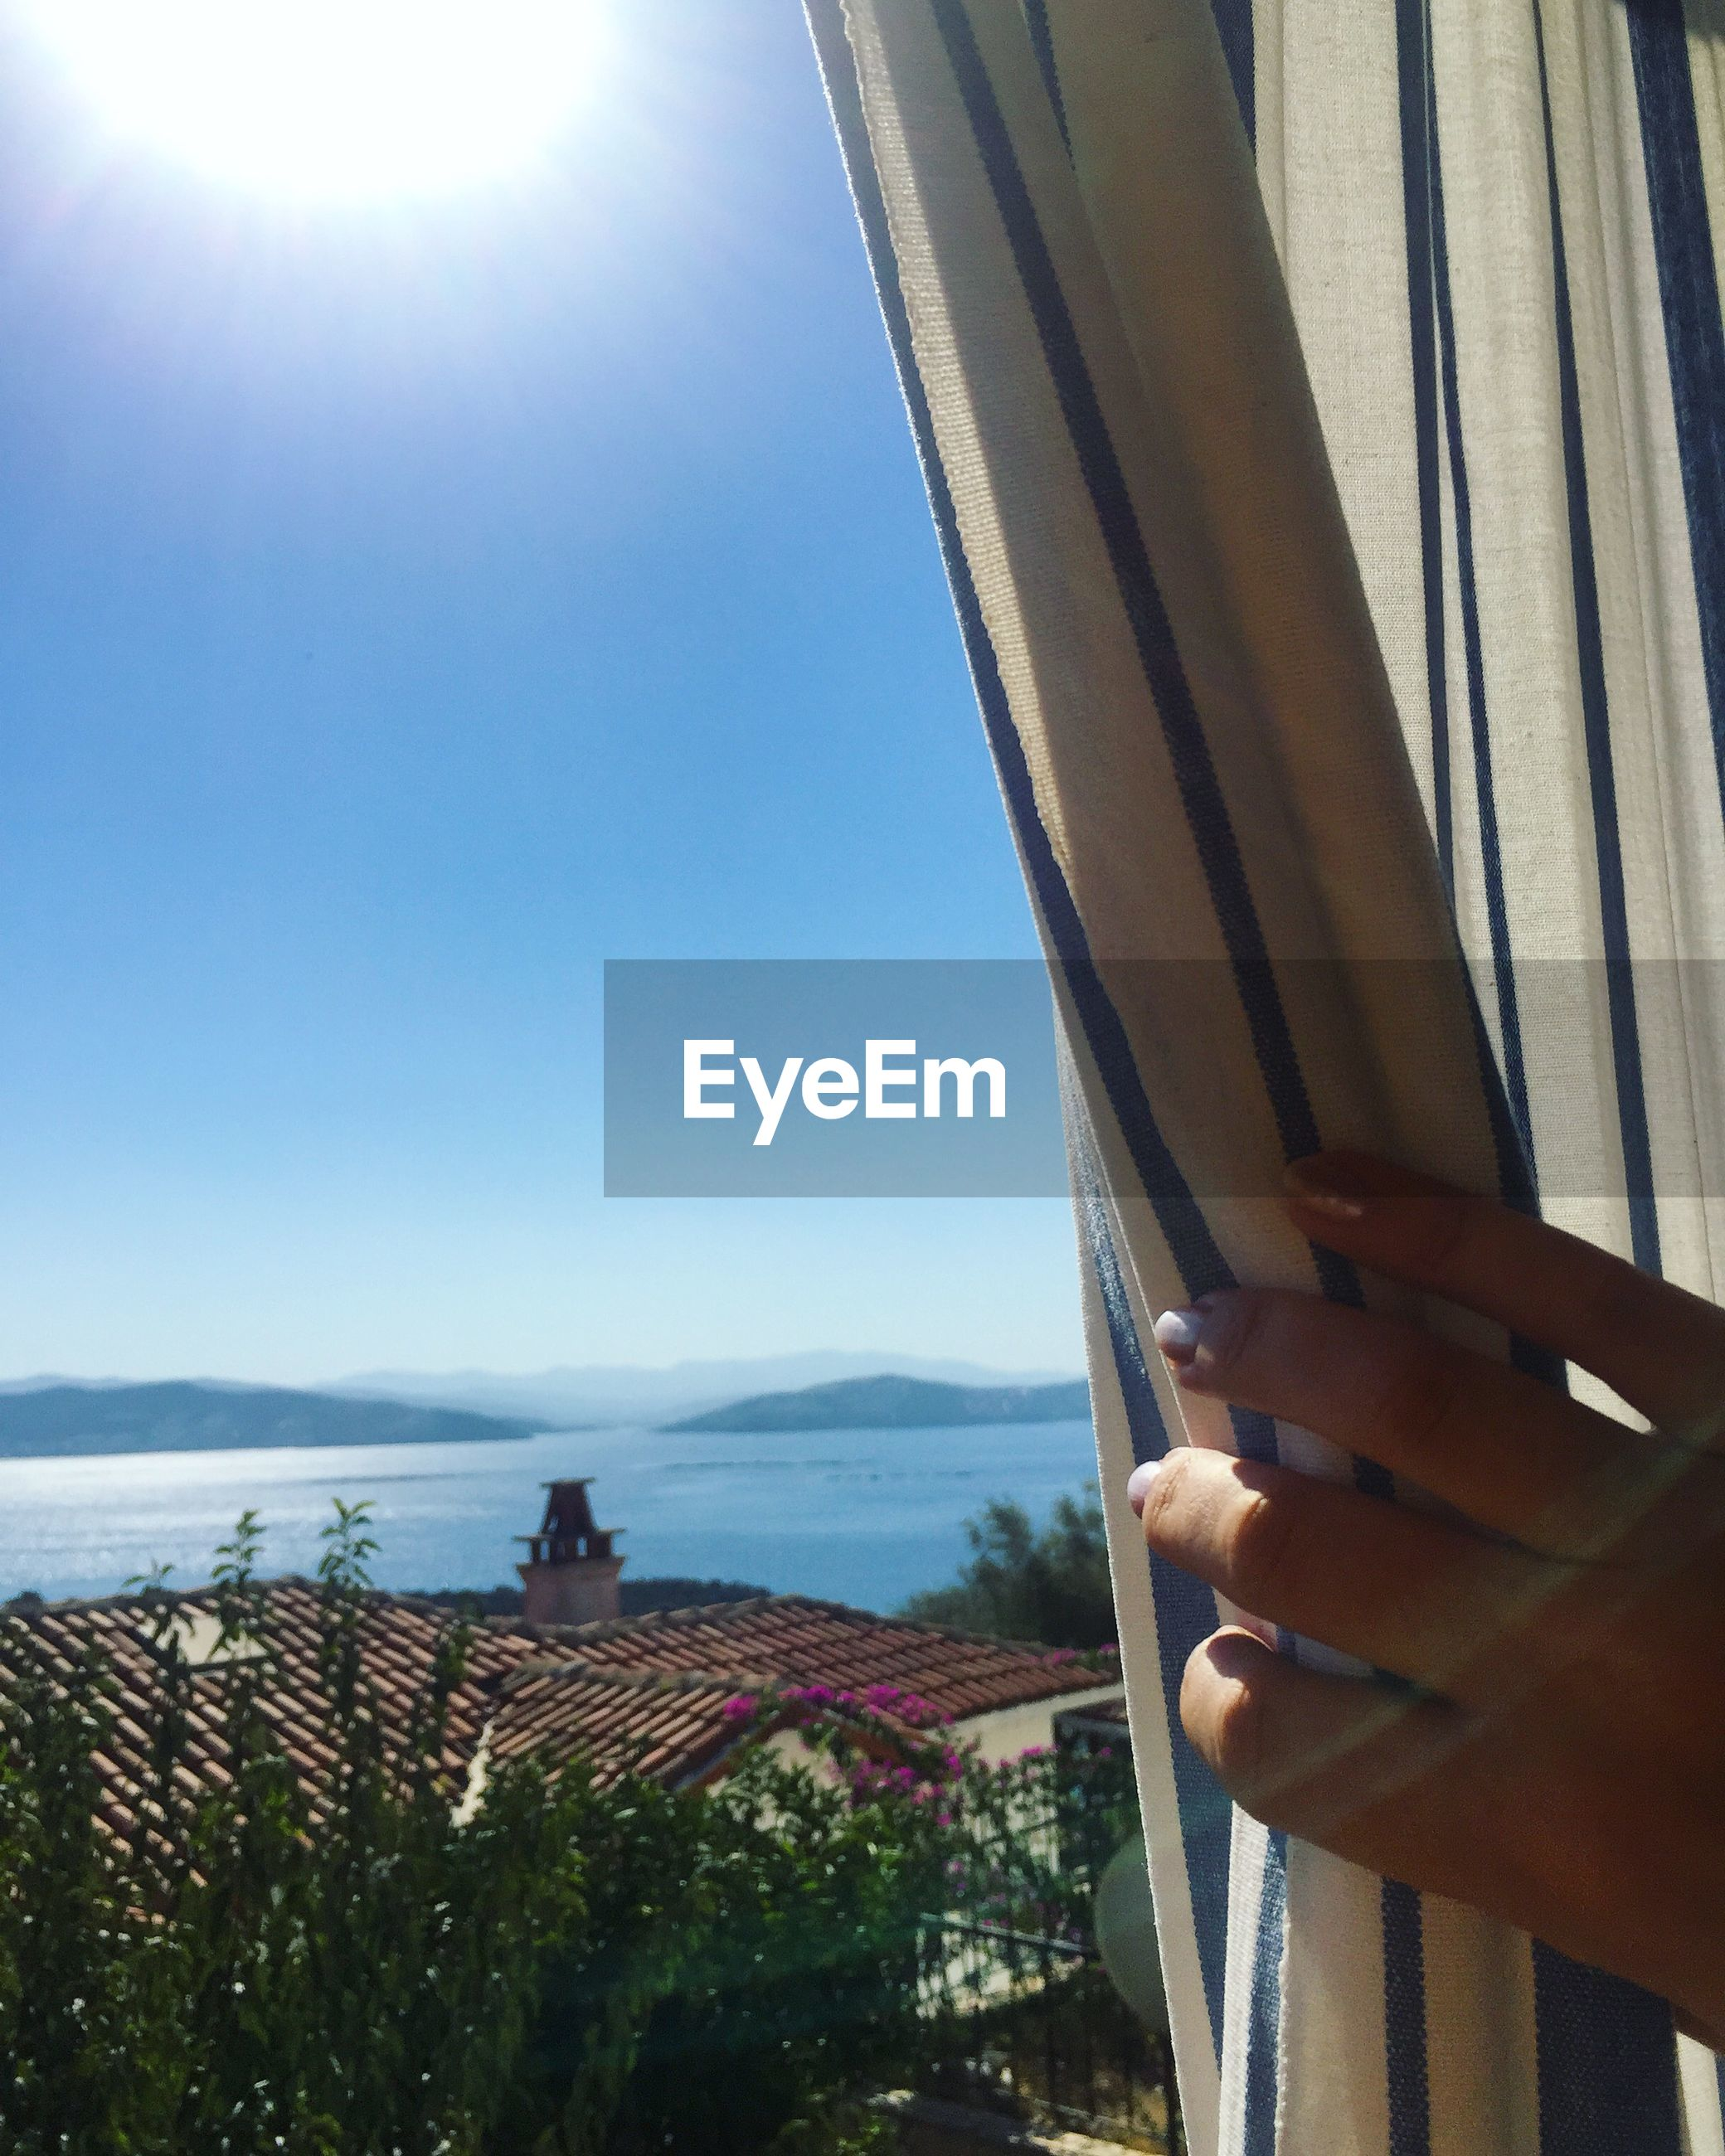 Cropped image of hand on curtain against sky